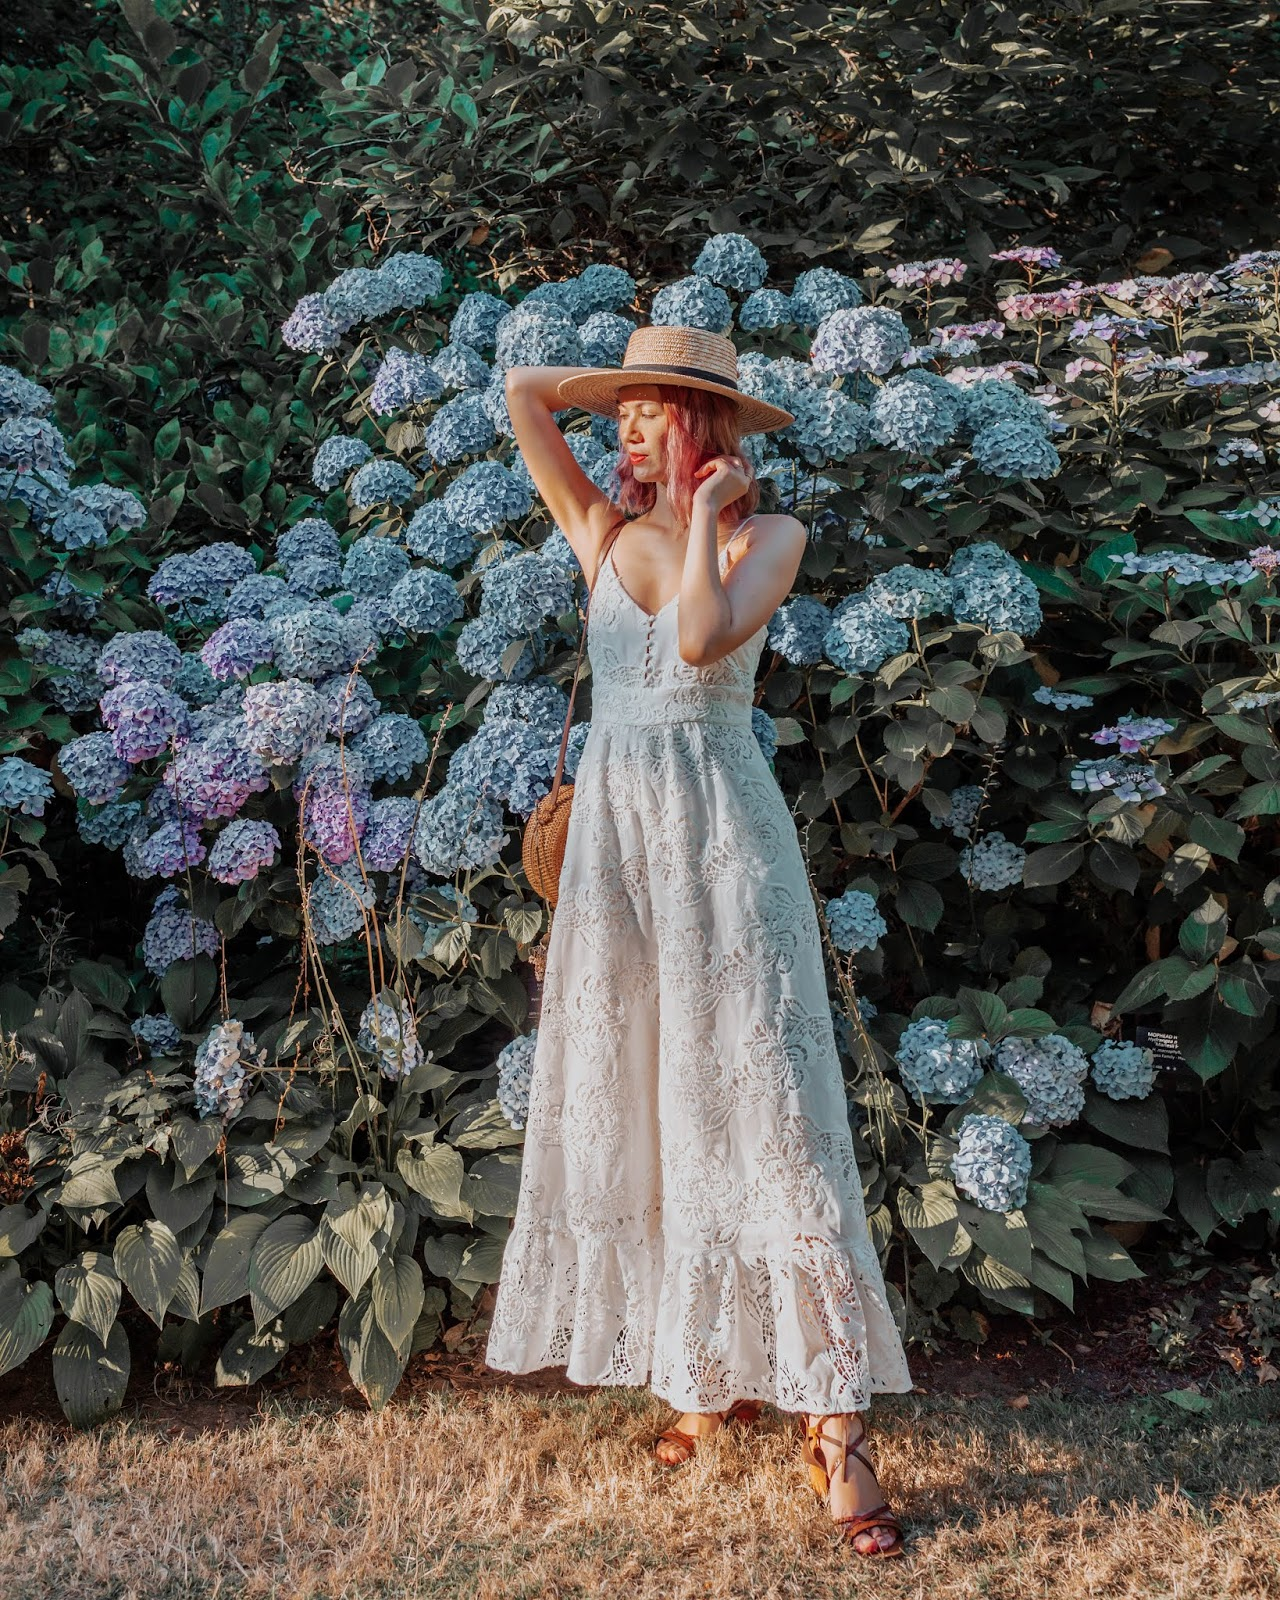 VanDusen Botanical Garden, Vancouver, pink hair, boater hat, rattan purse, wicker purse, style blogger, travel style, travel blogger, things to do in vancouver, summer lookbook, fall lookbook, fall trends, canadian blogger, canadian fashion, nordstrom, zara fall 2018, roju store, urban outfitters, australian fashion